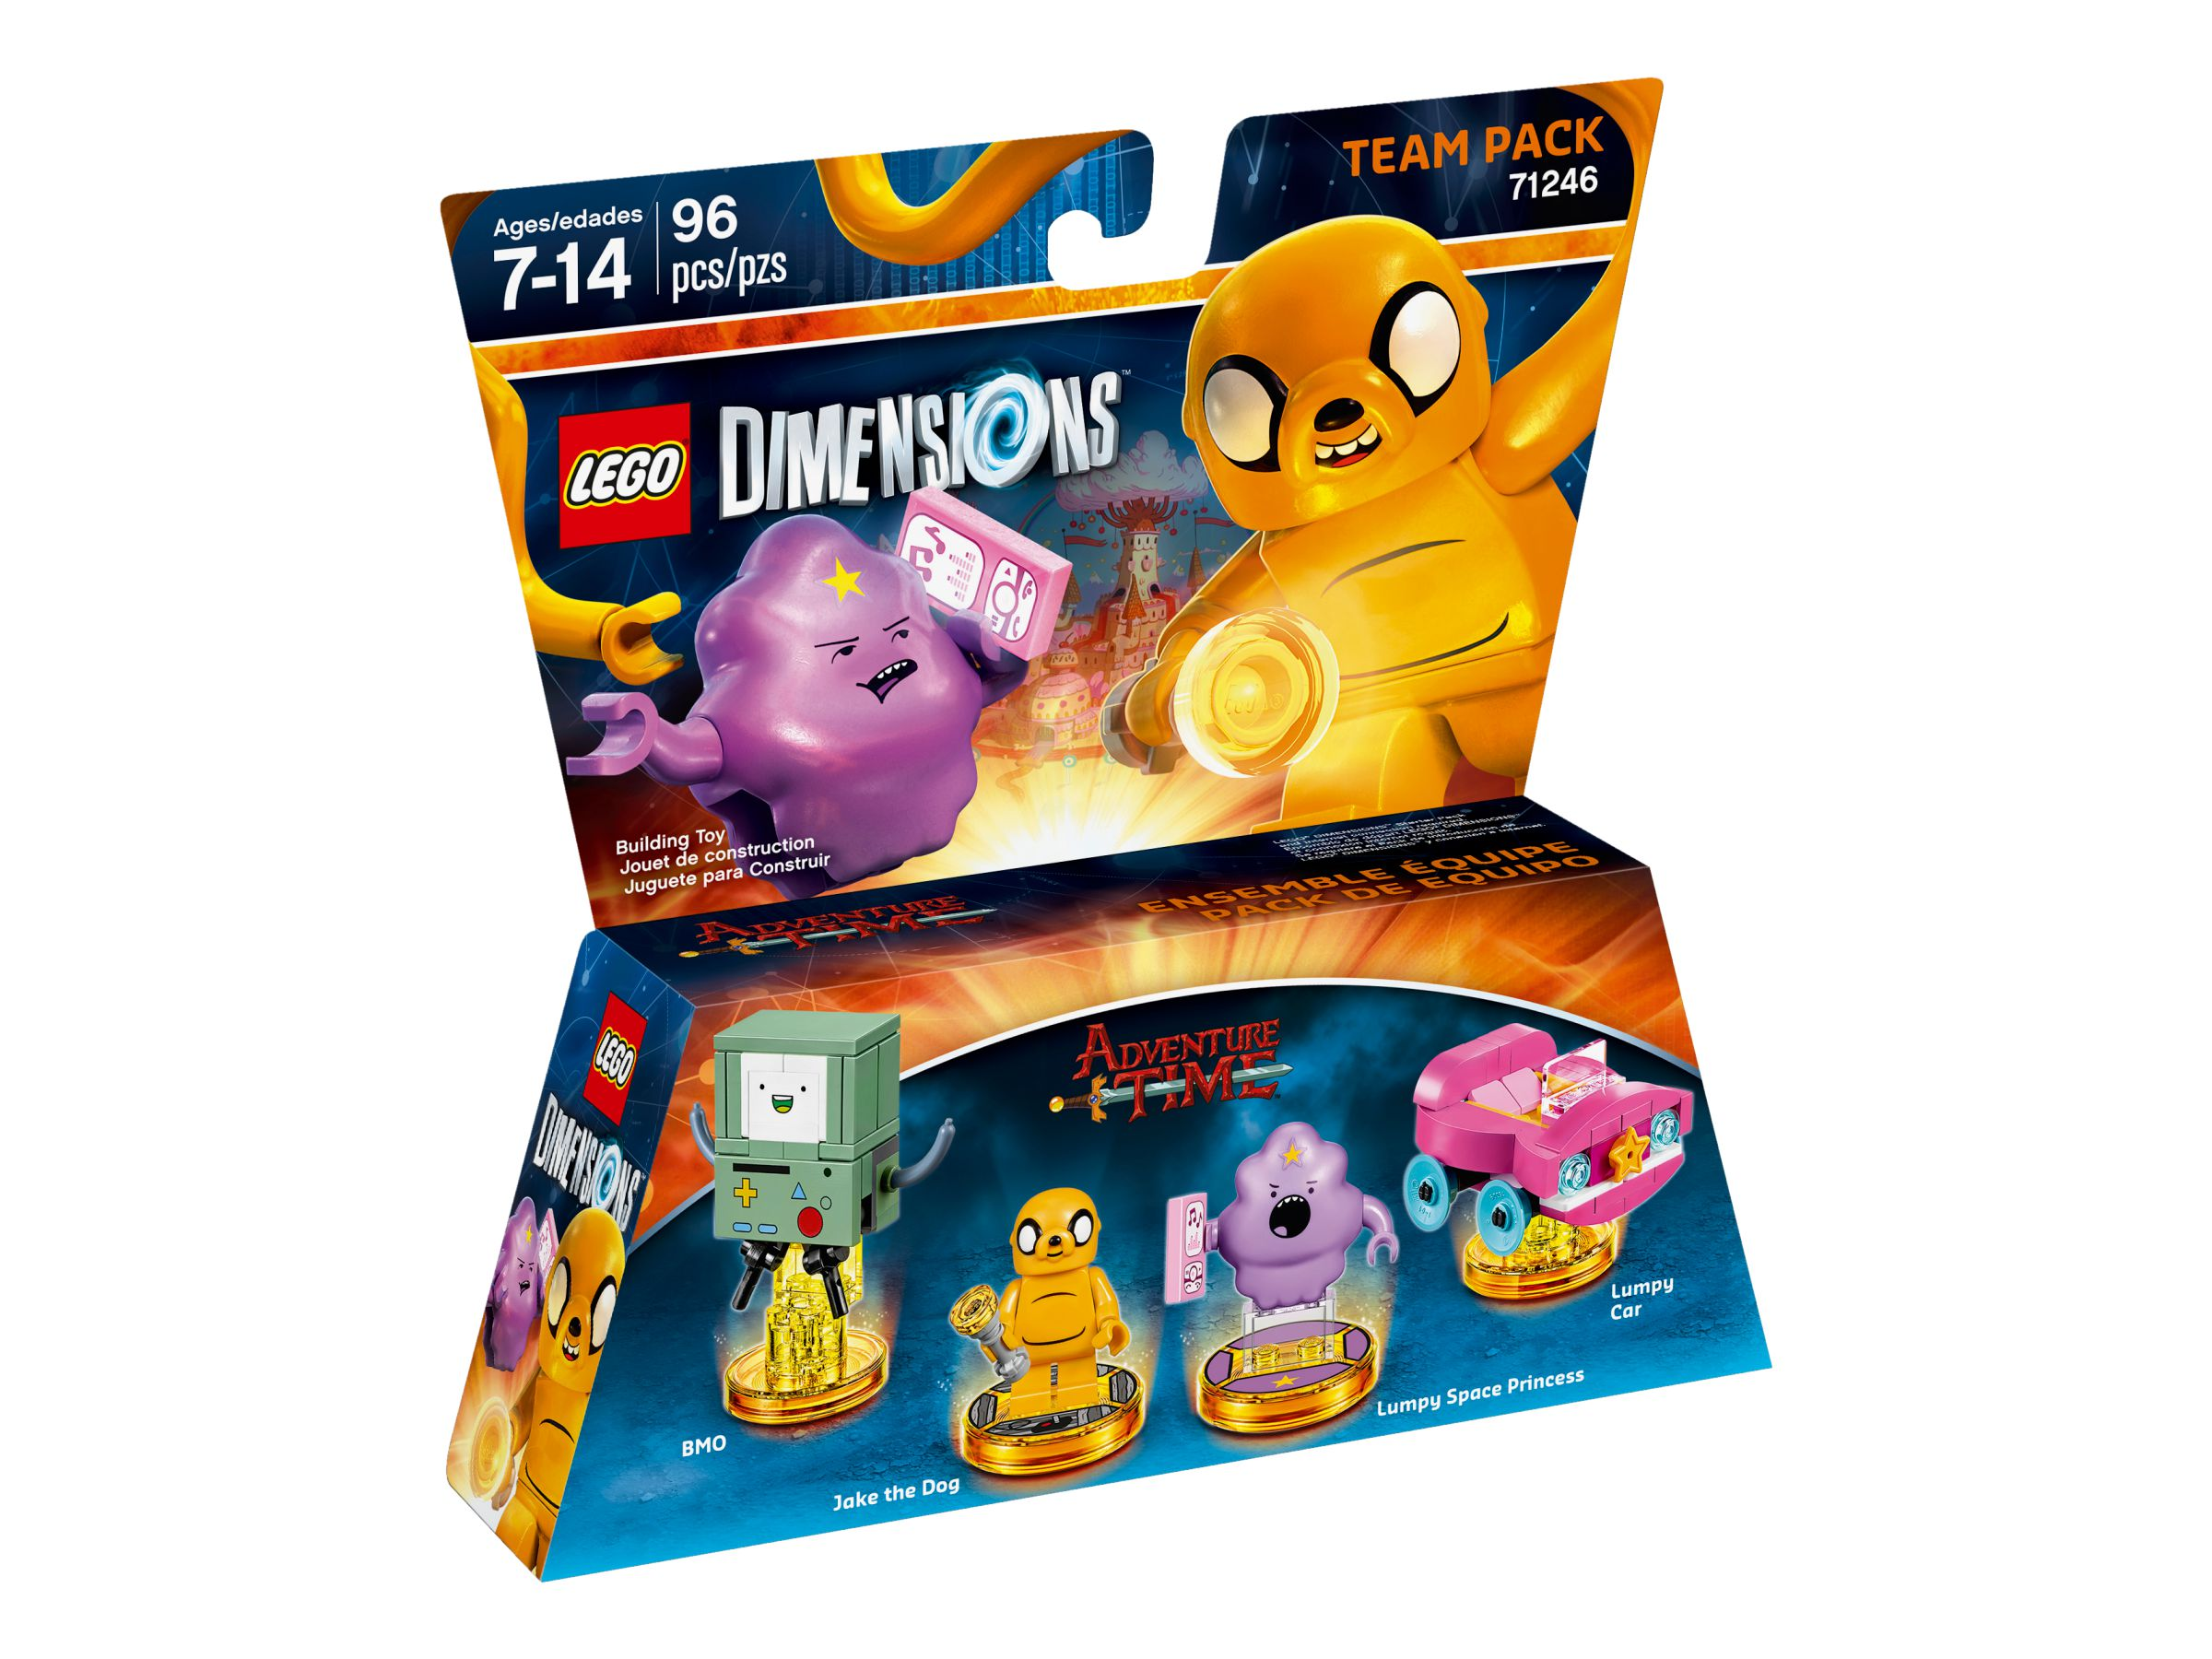 LEGO Dimensions 71246 Team Pack Adventure Time LEGO_71246_alt1.jpg